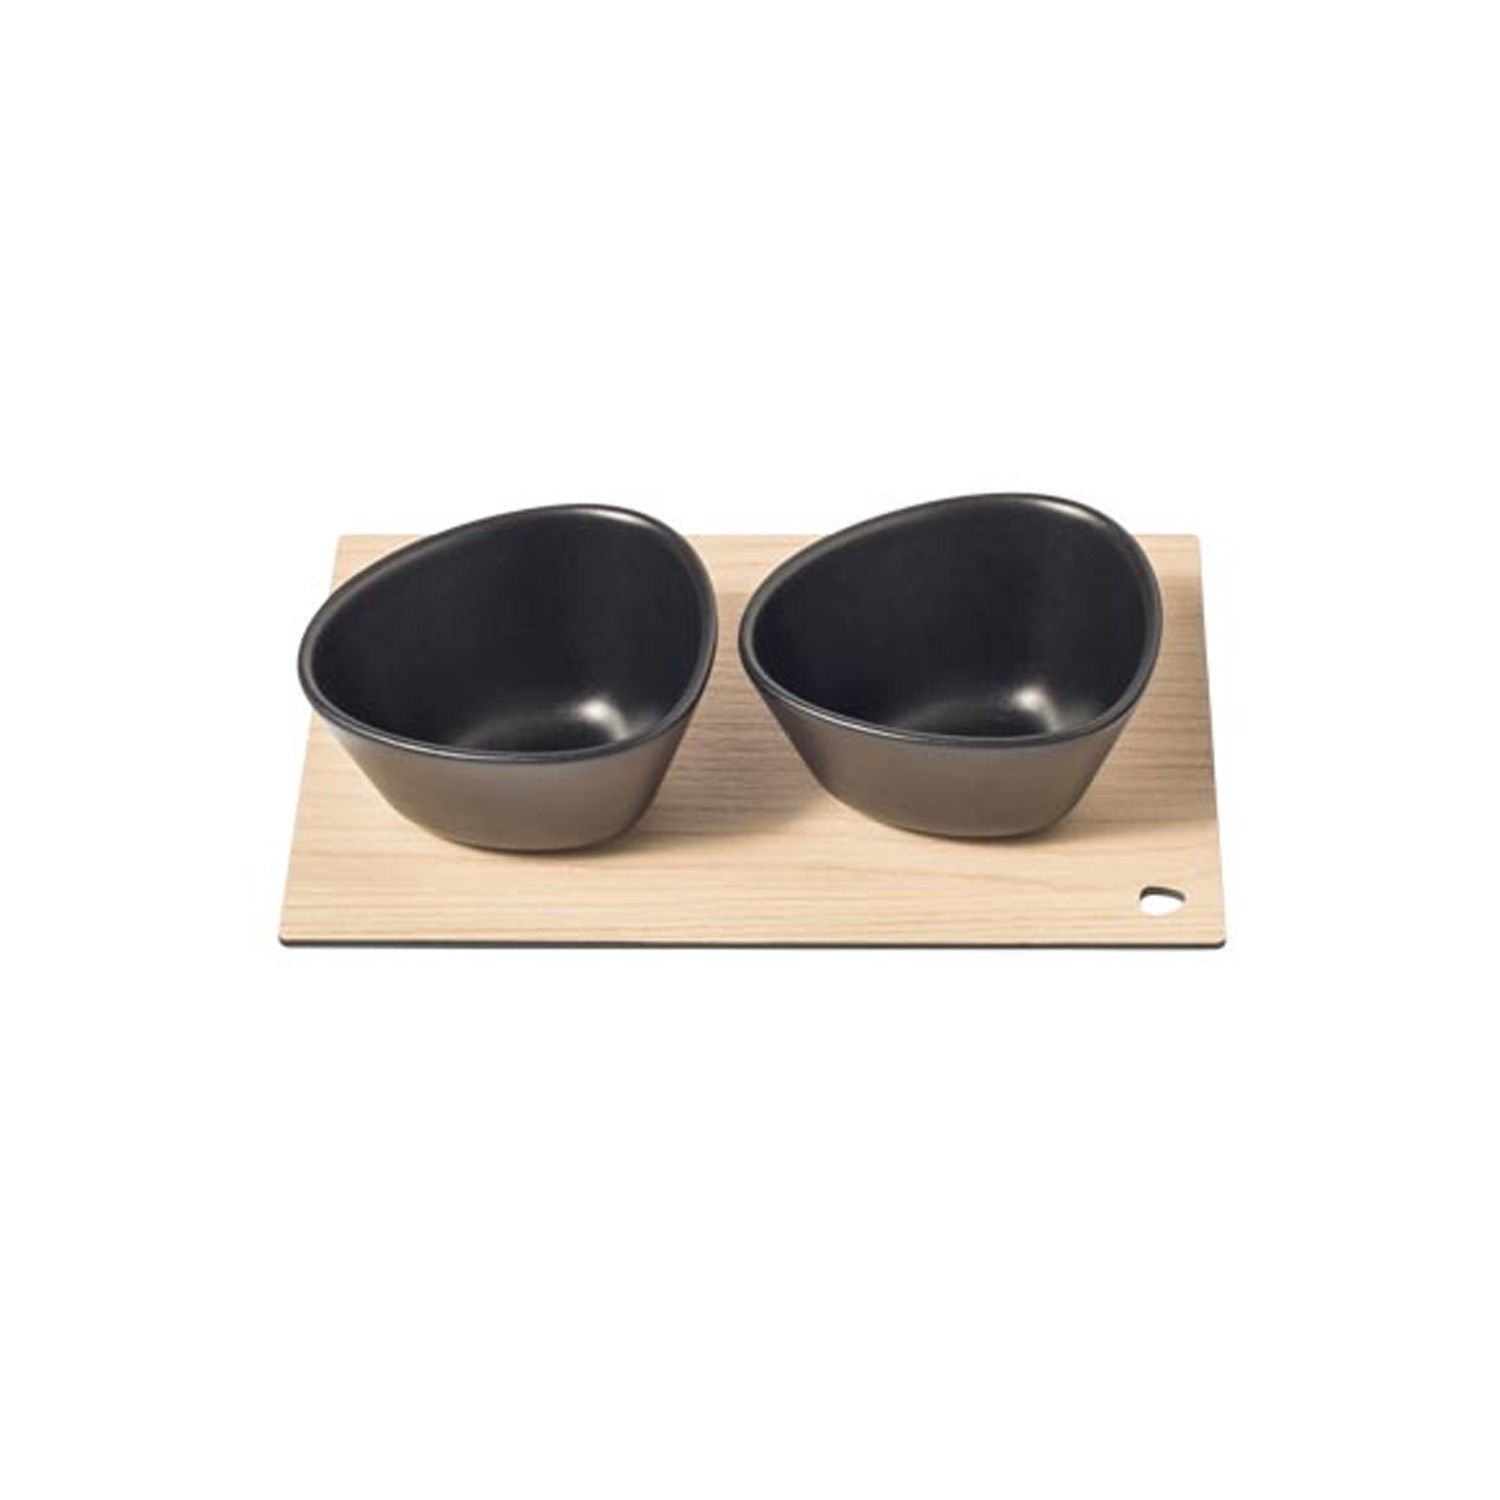 LindDNA - Curve Serveringsbræt - Serving Board Set - Sort/Ask